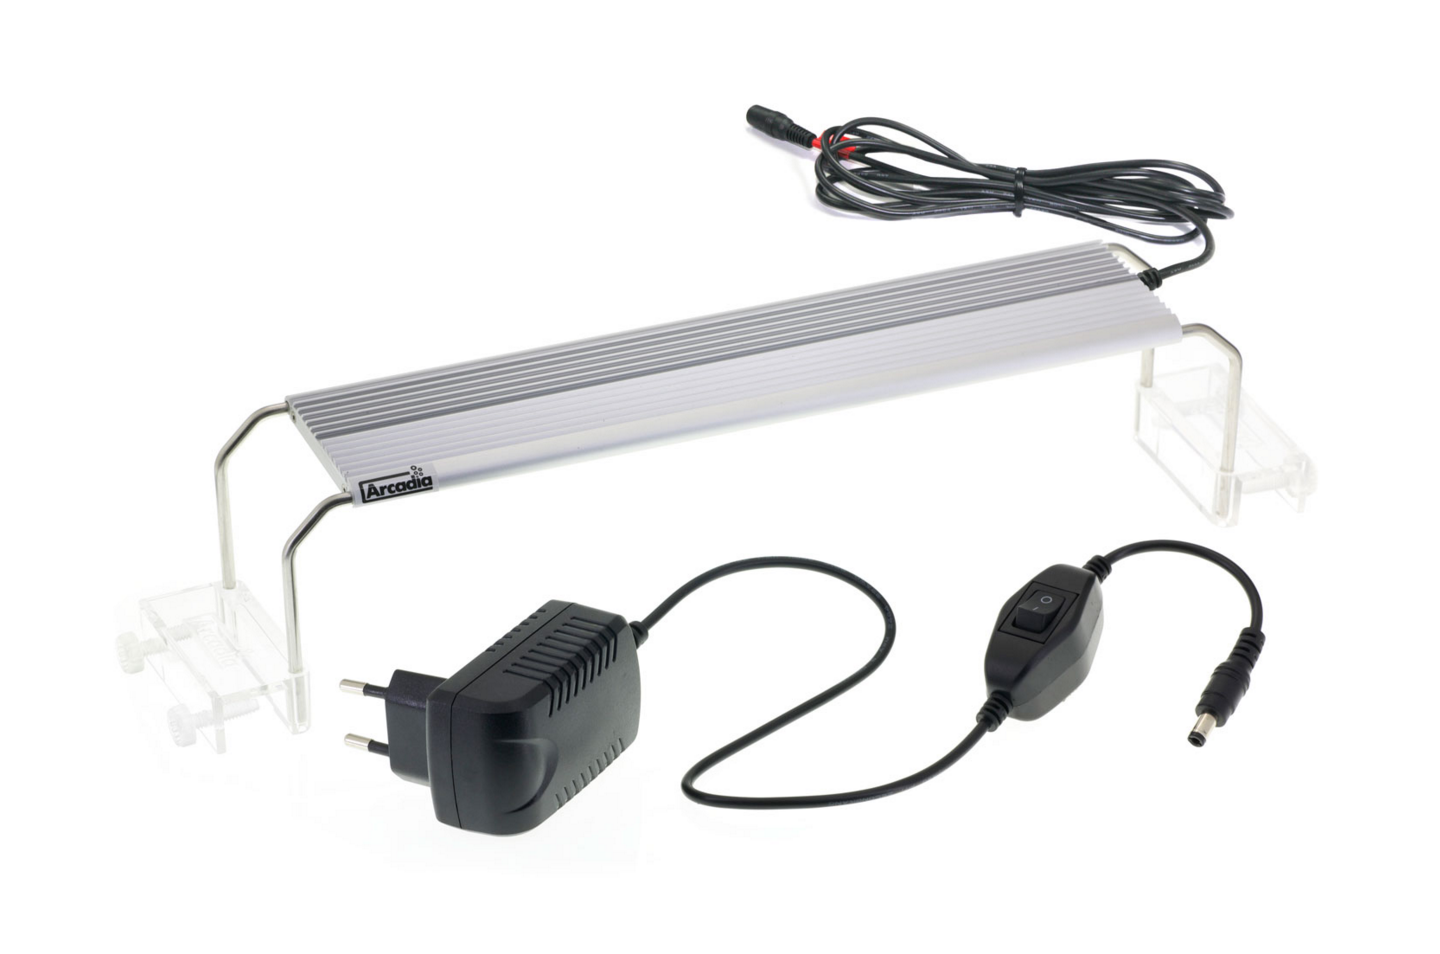 26cm Tropical LED Blade light from Arcadia worth £98.99! sweepstakes